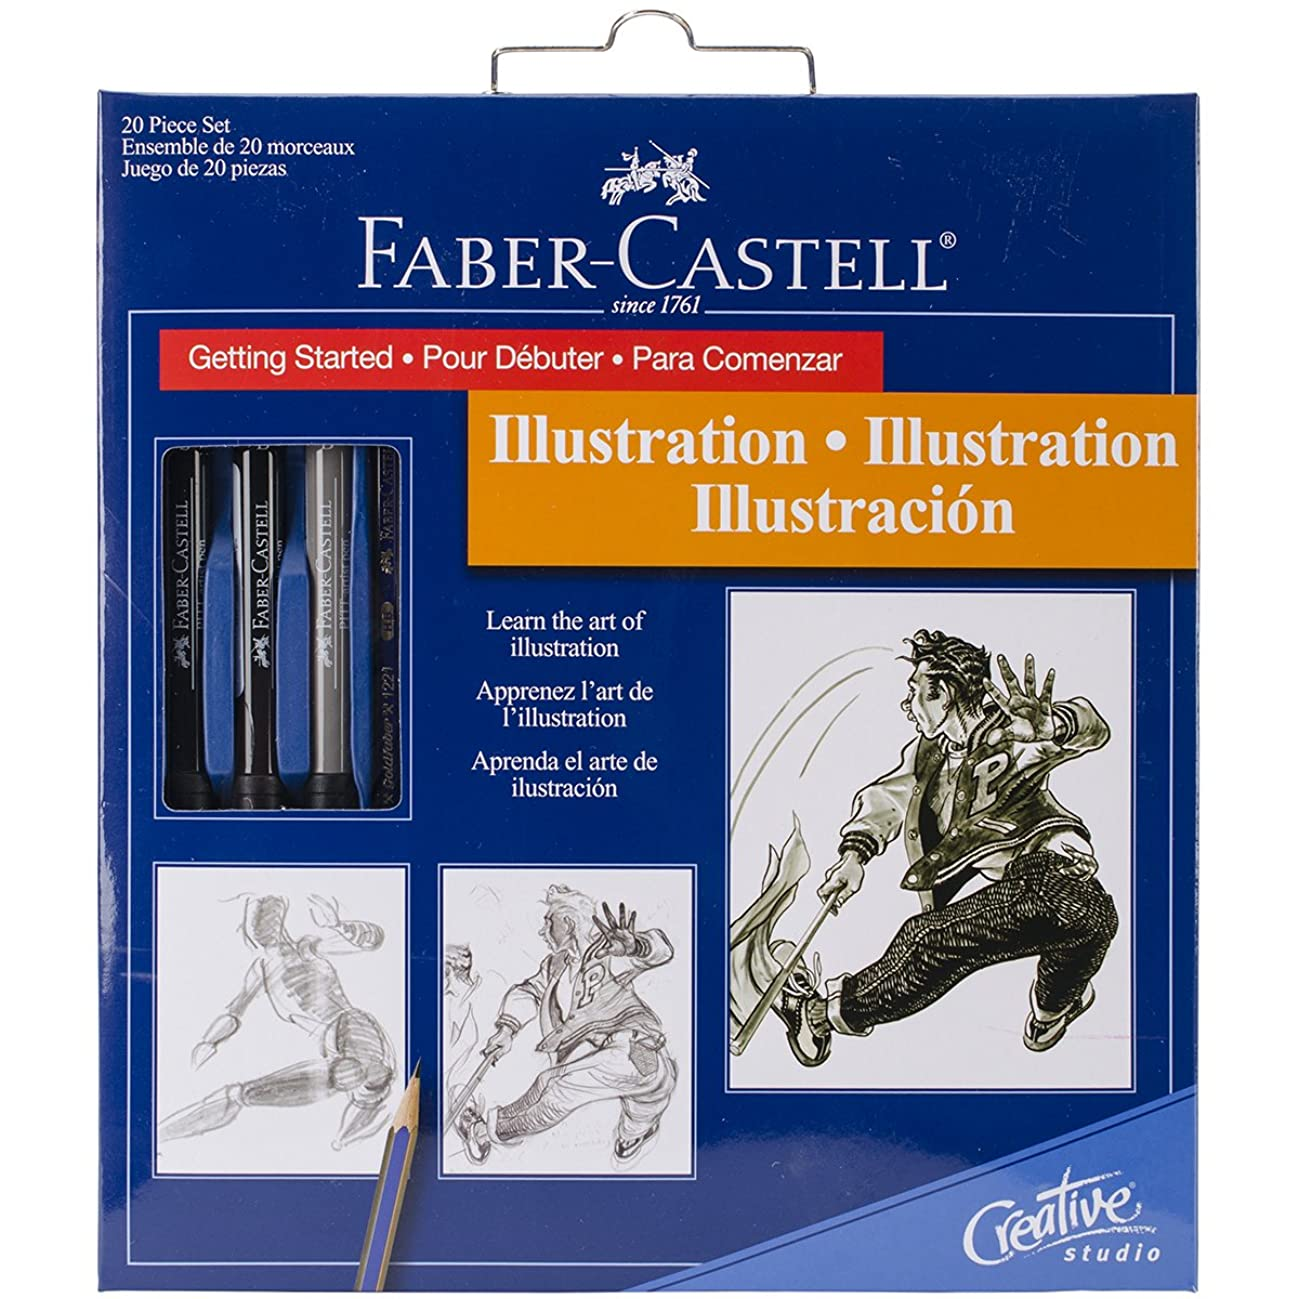 Illustration Set With Instructions and Tools To Learn Artist Drawing Basics